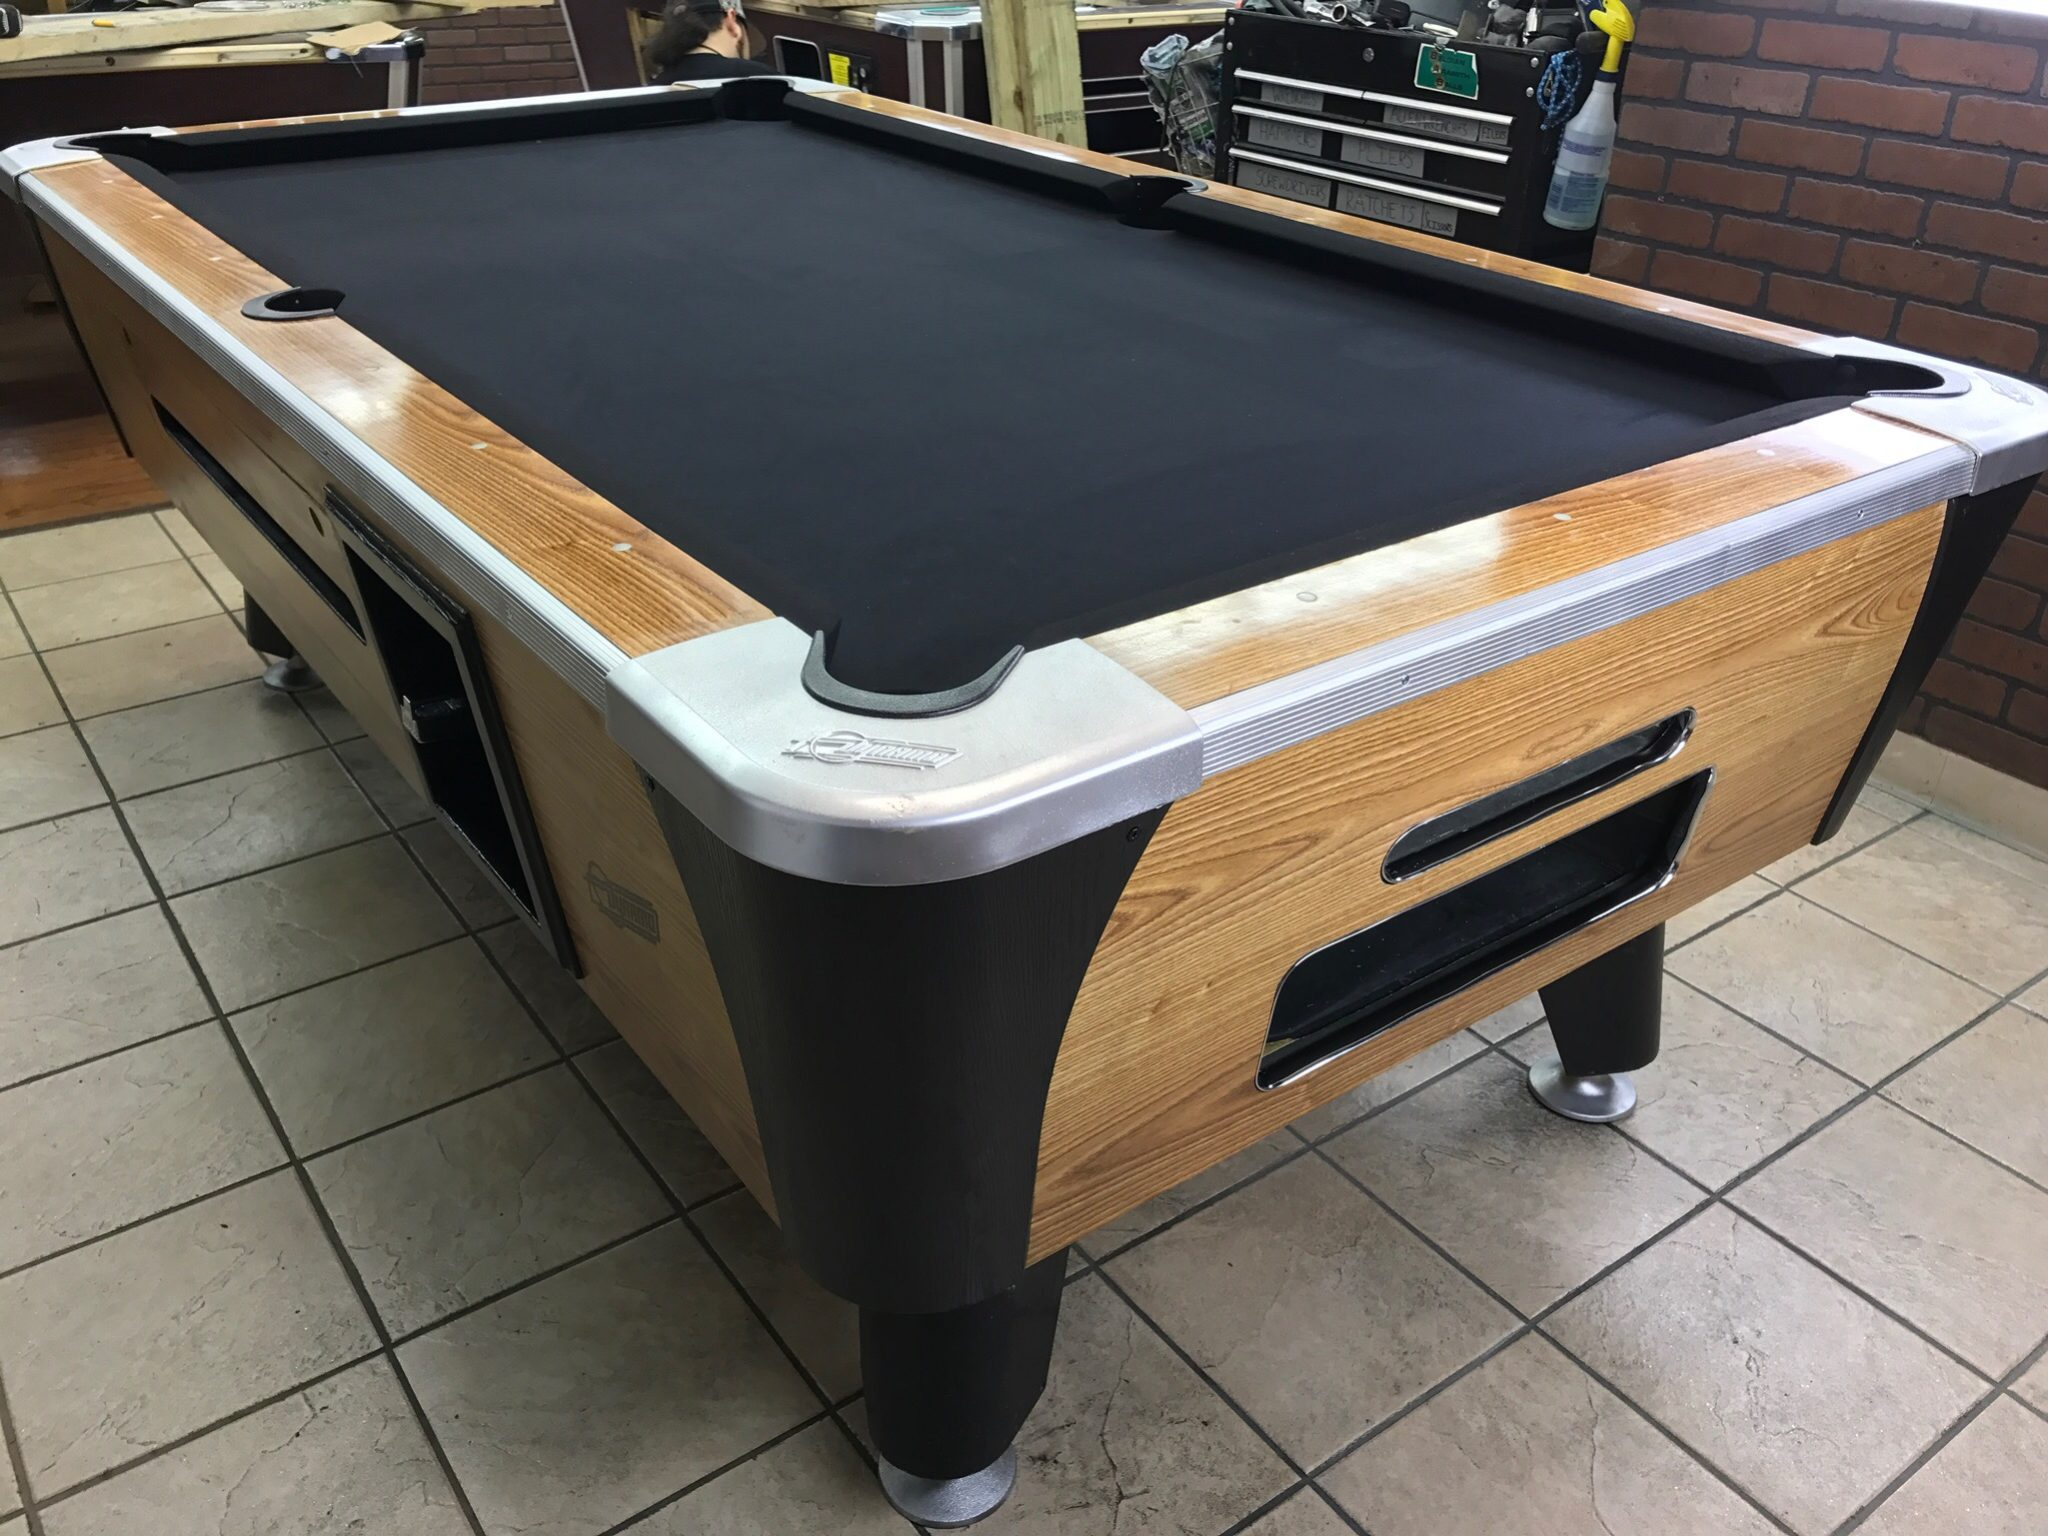 table 042117 dynamo used coin operated pool table used coin rh barpooltables net dynamo pool table bumpers dynamo pool table key